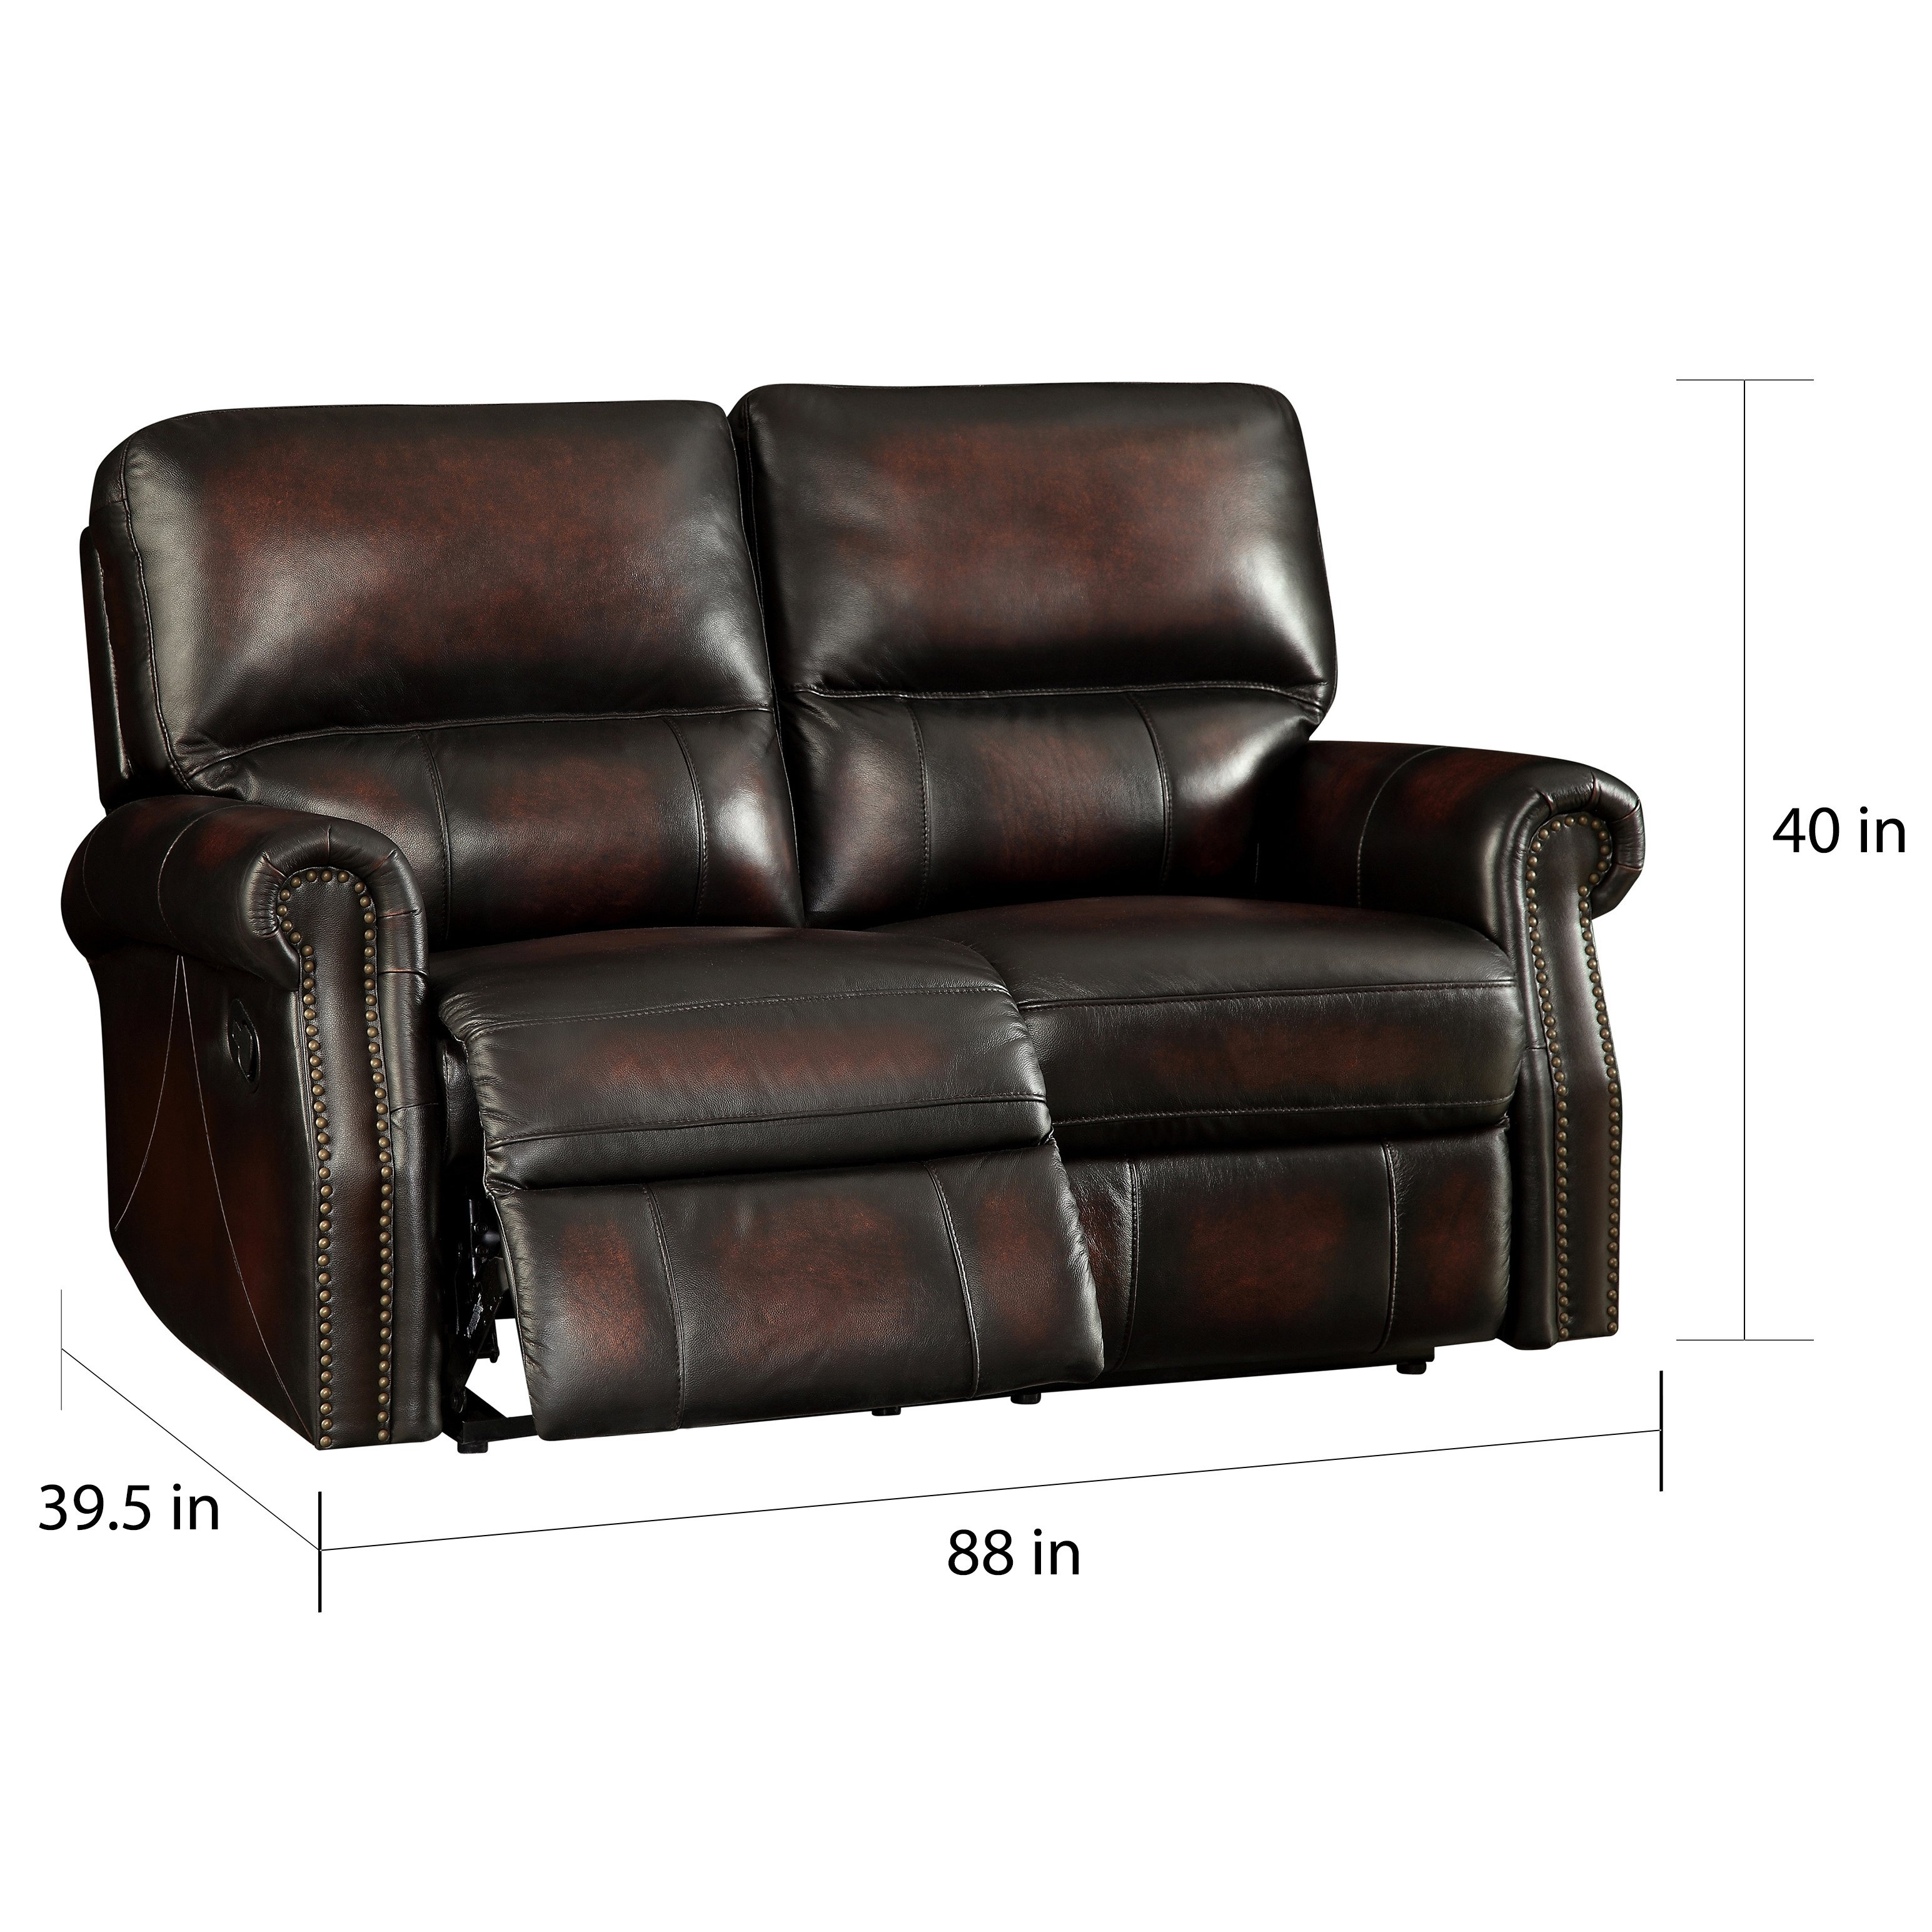 Good 25 Leather Wallaway Recliners Local | Russiandesignshow For Burton Leather 3 Piece Sectionals (Image 7 of 25)